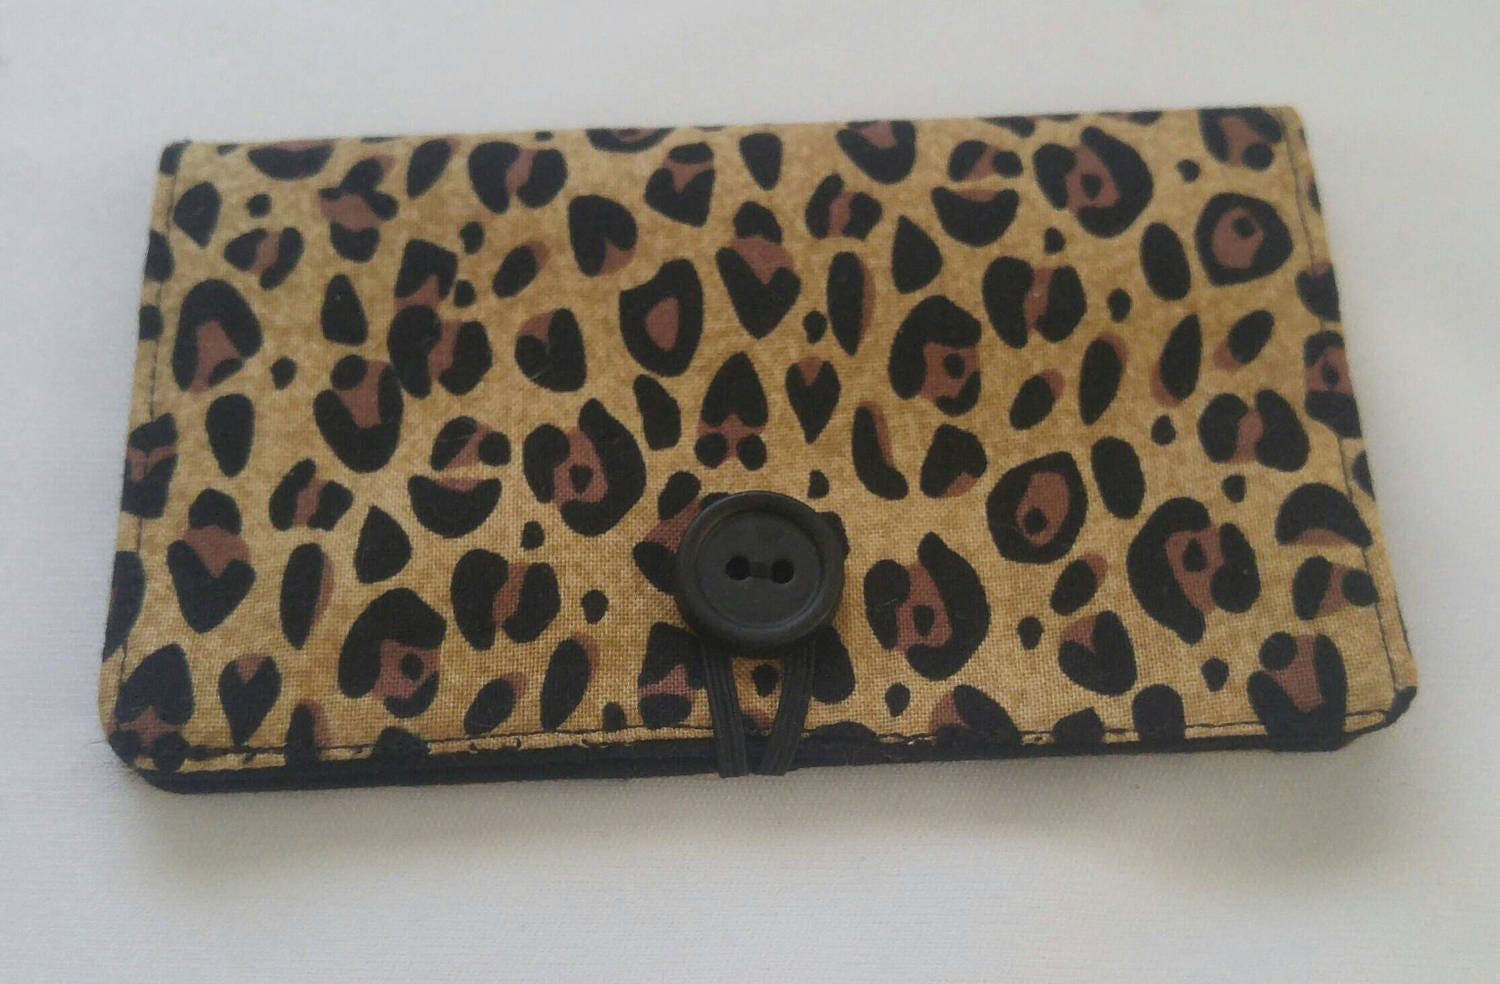 Leopard Print business card holder small travel wallet